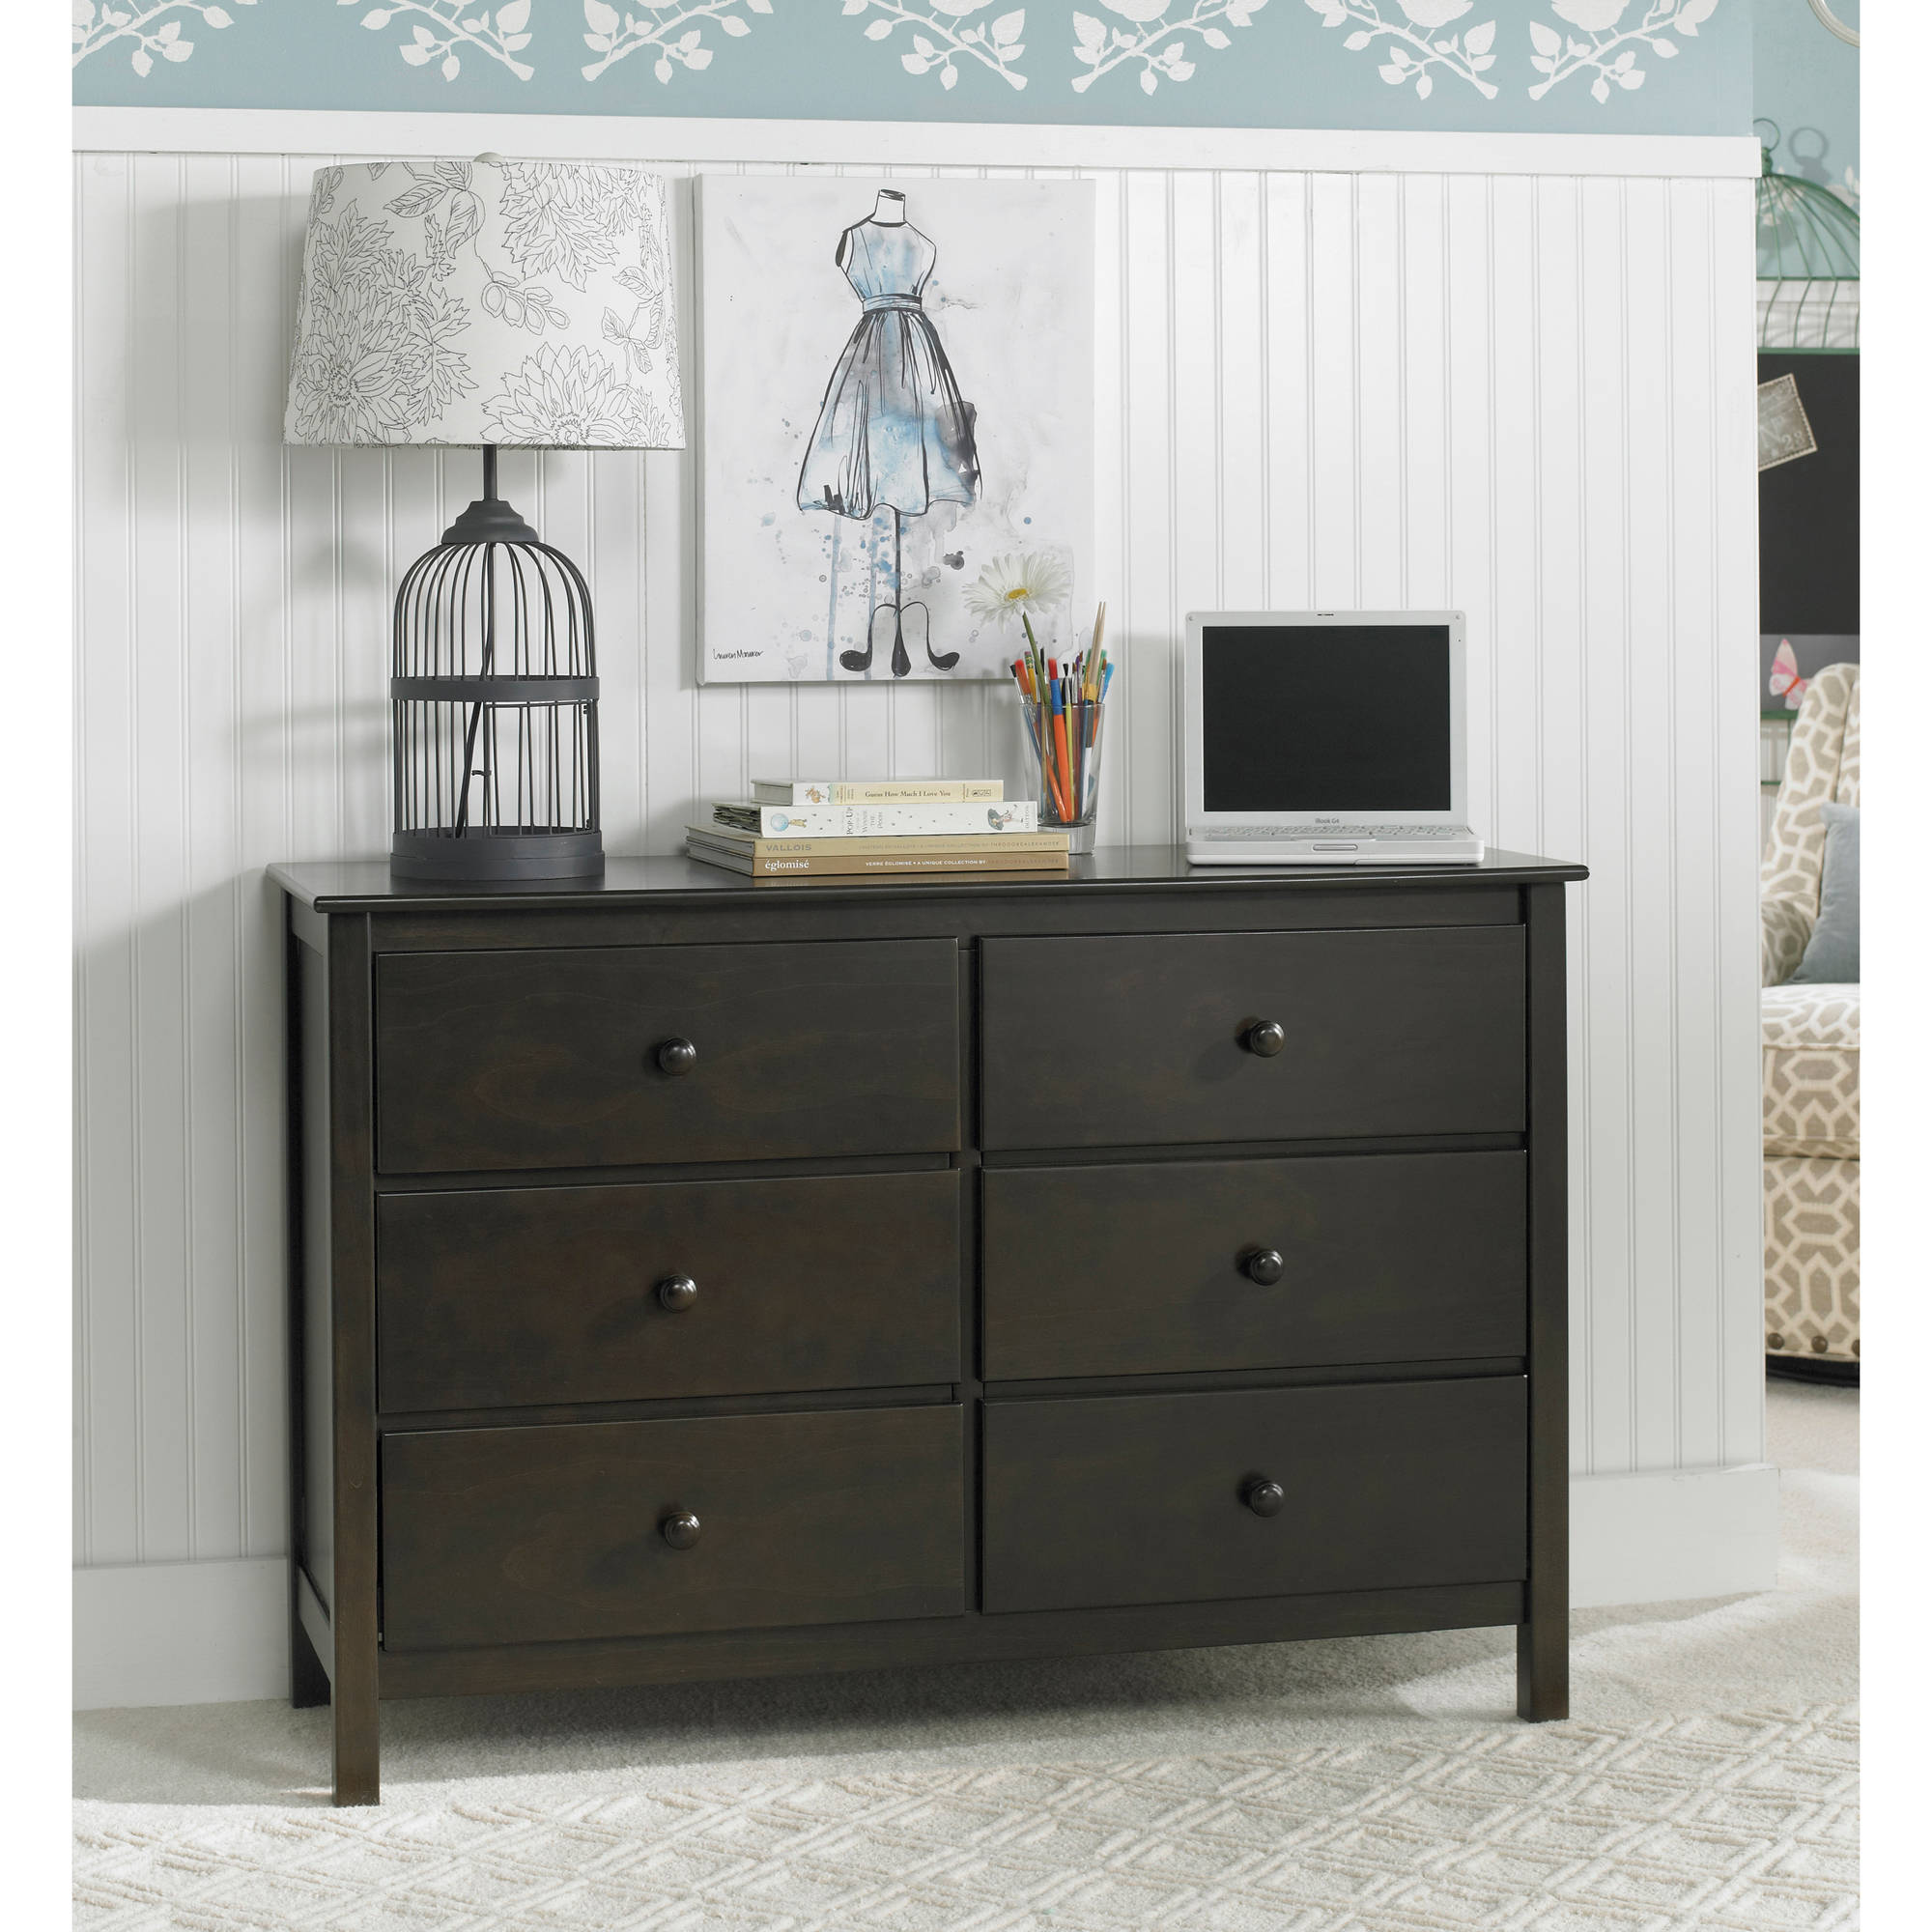 Fisher-Price 6 Drawer Double Dresser, Choose Your Finish and Hardware